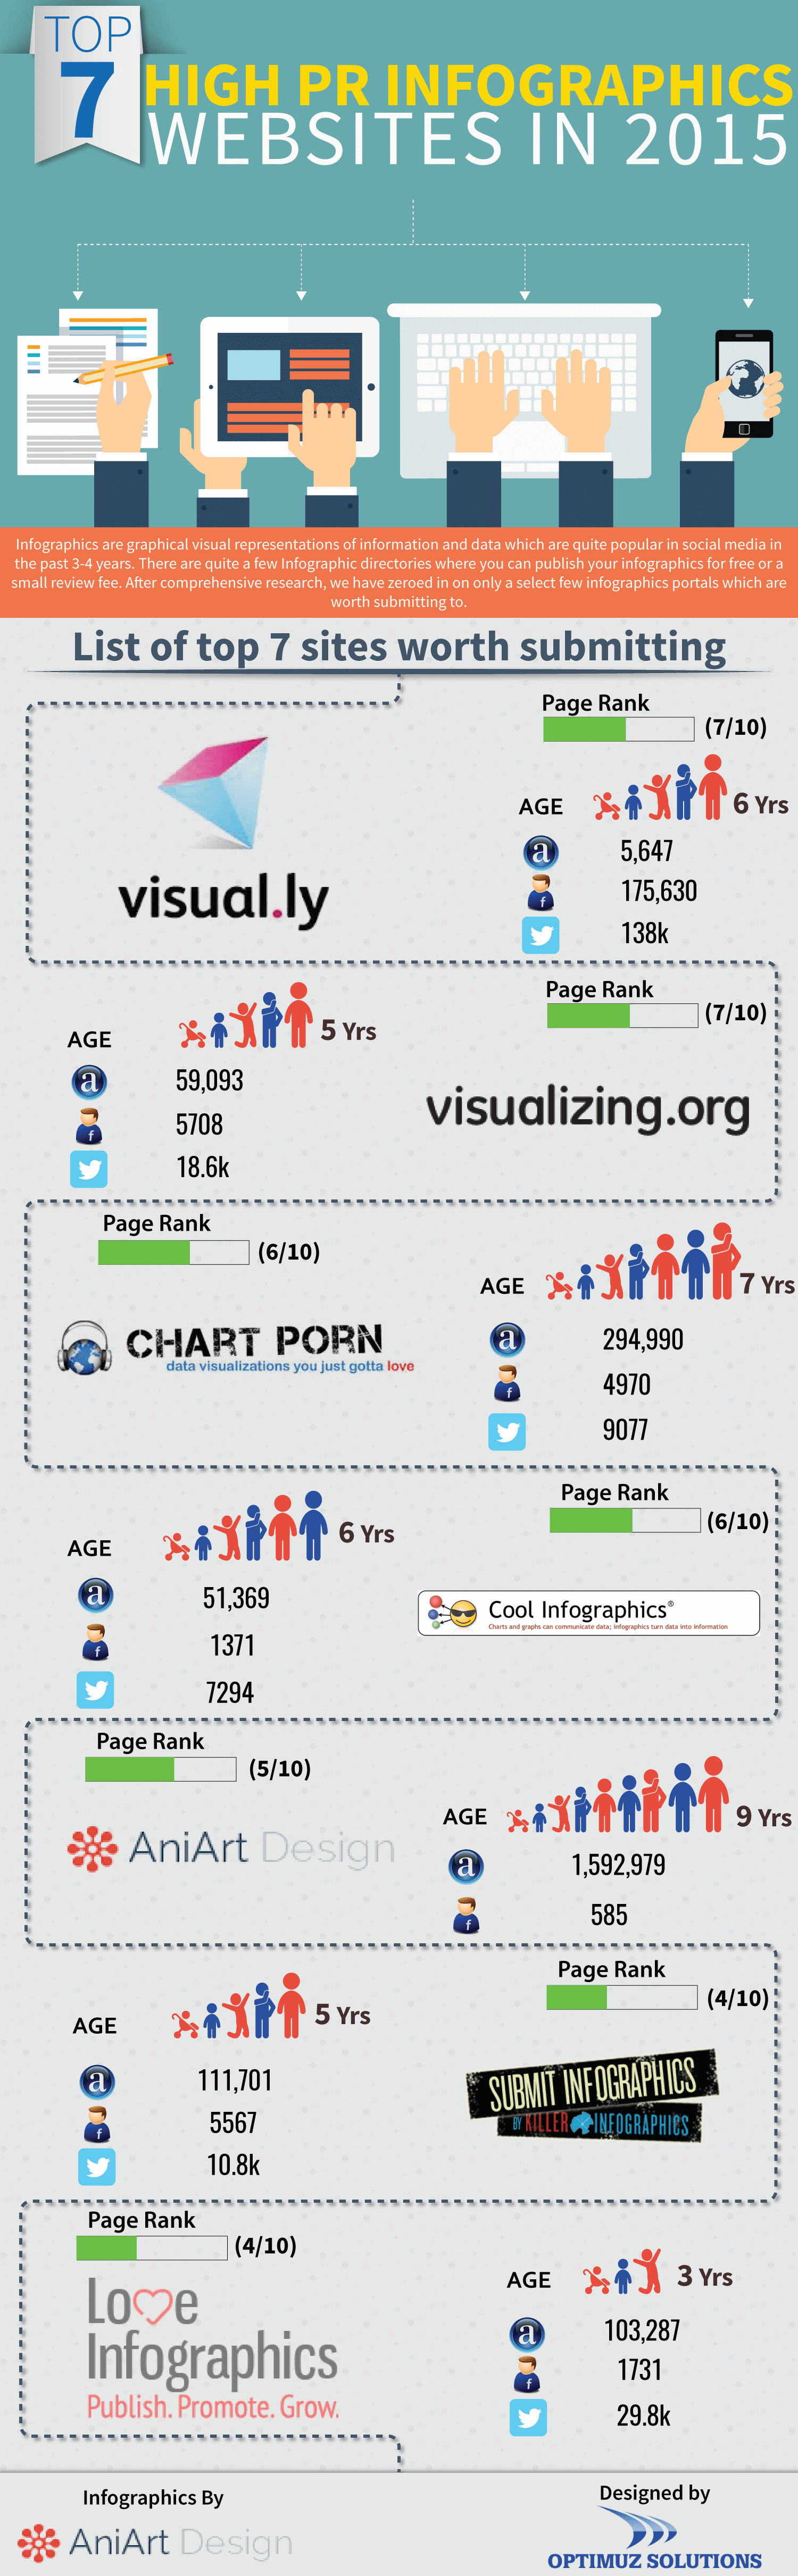 Top 7 Infographics websites in 2015